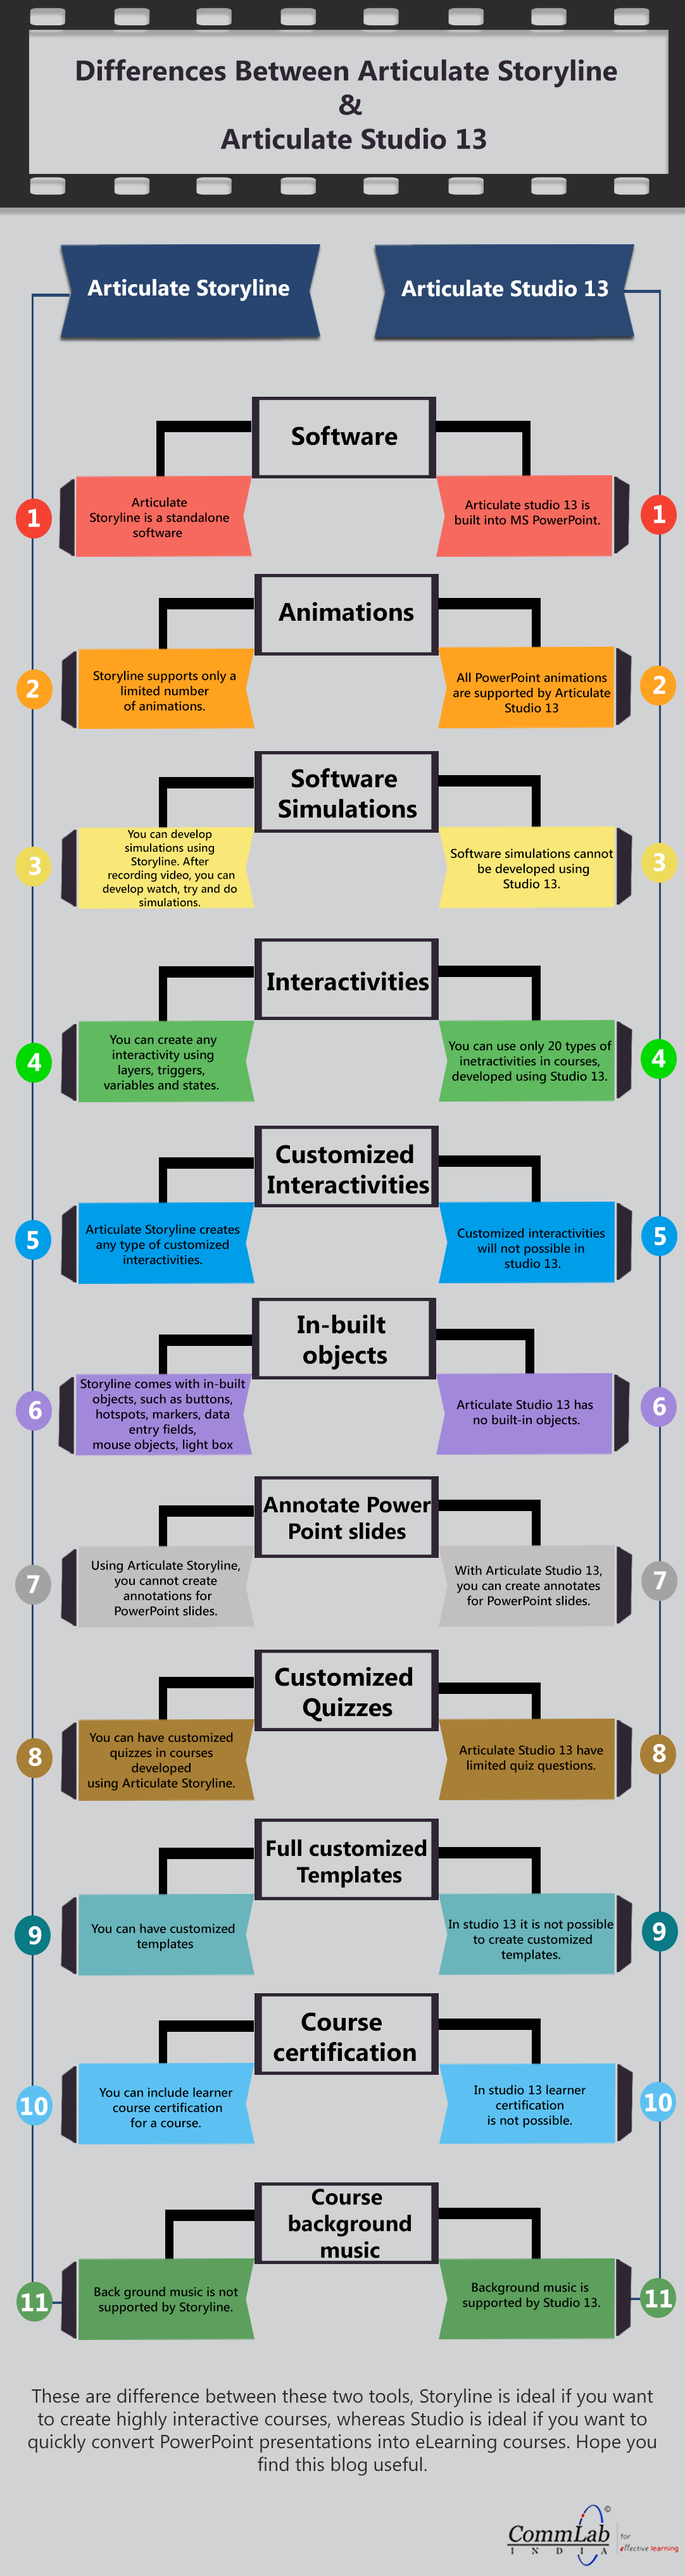 Articulate Storyline and Articulate Studio 13  Differences – An Infographic